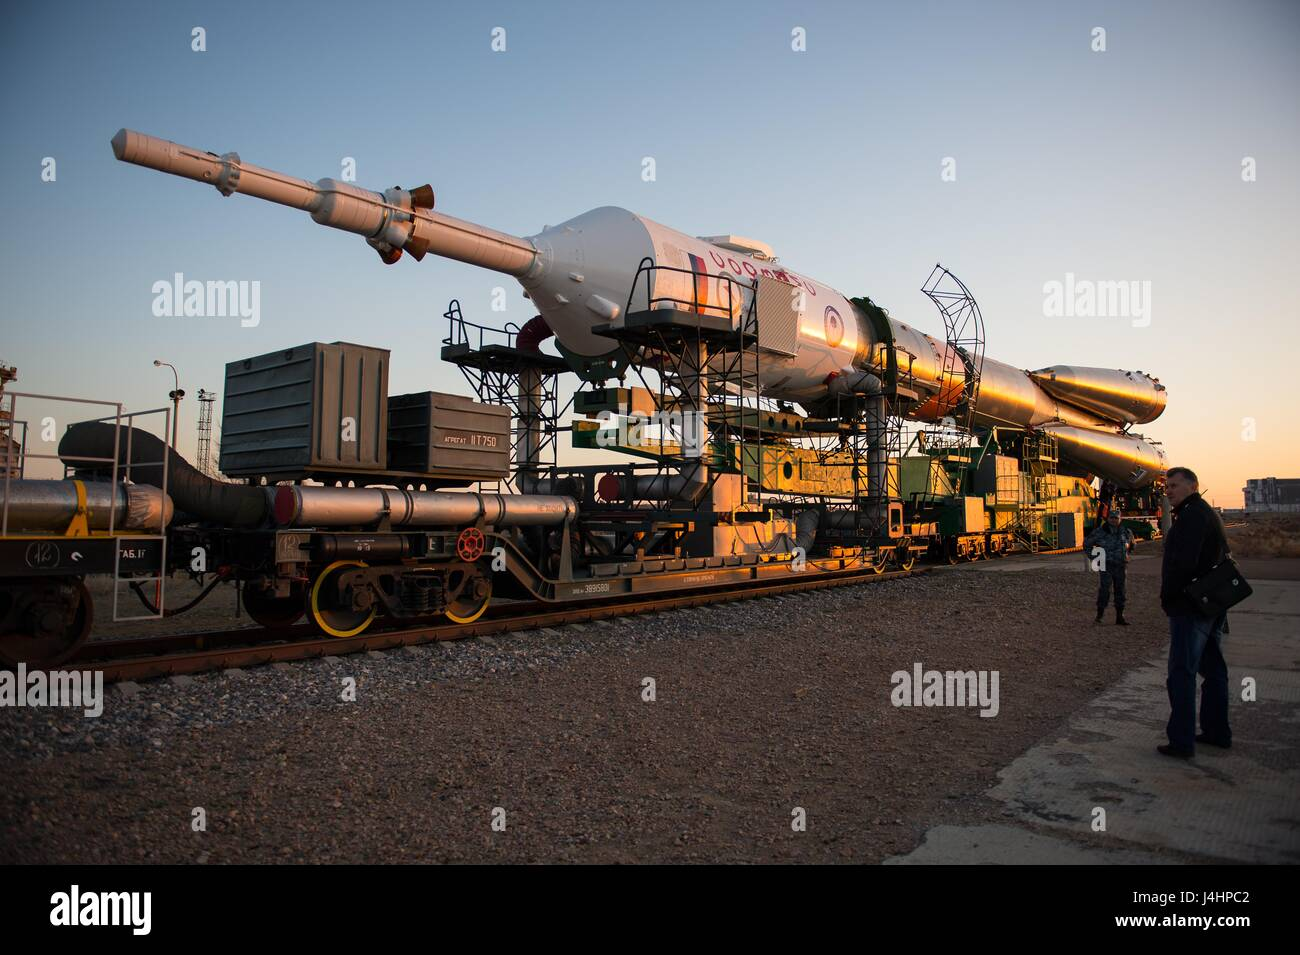 A train rolls the Soyuz MS-04 spacecraft rocket to the Baikonur Cosmodrome launch pad in preparation for the NASA - Stock Image